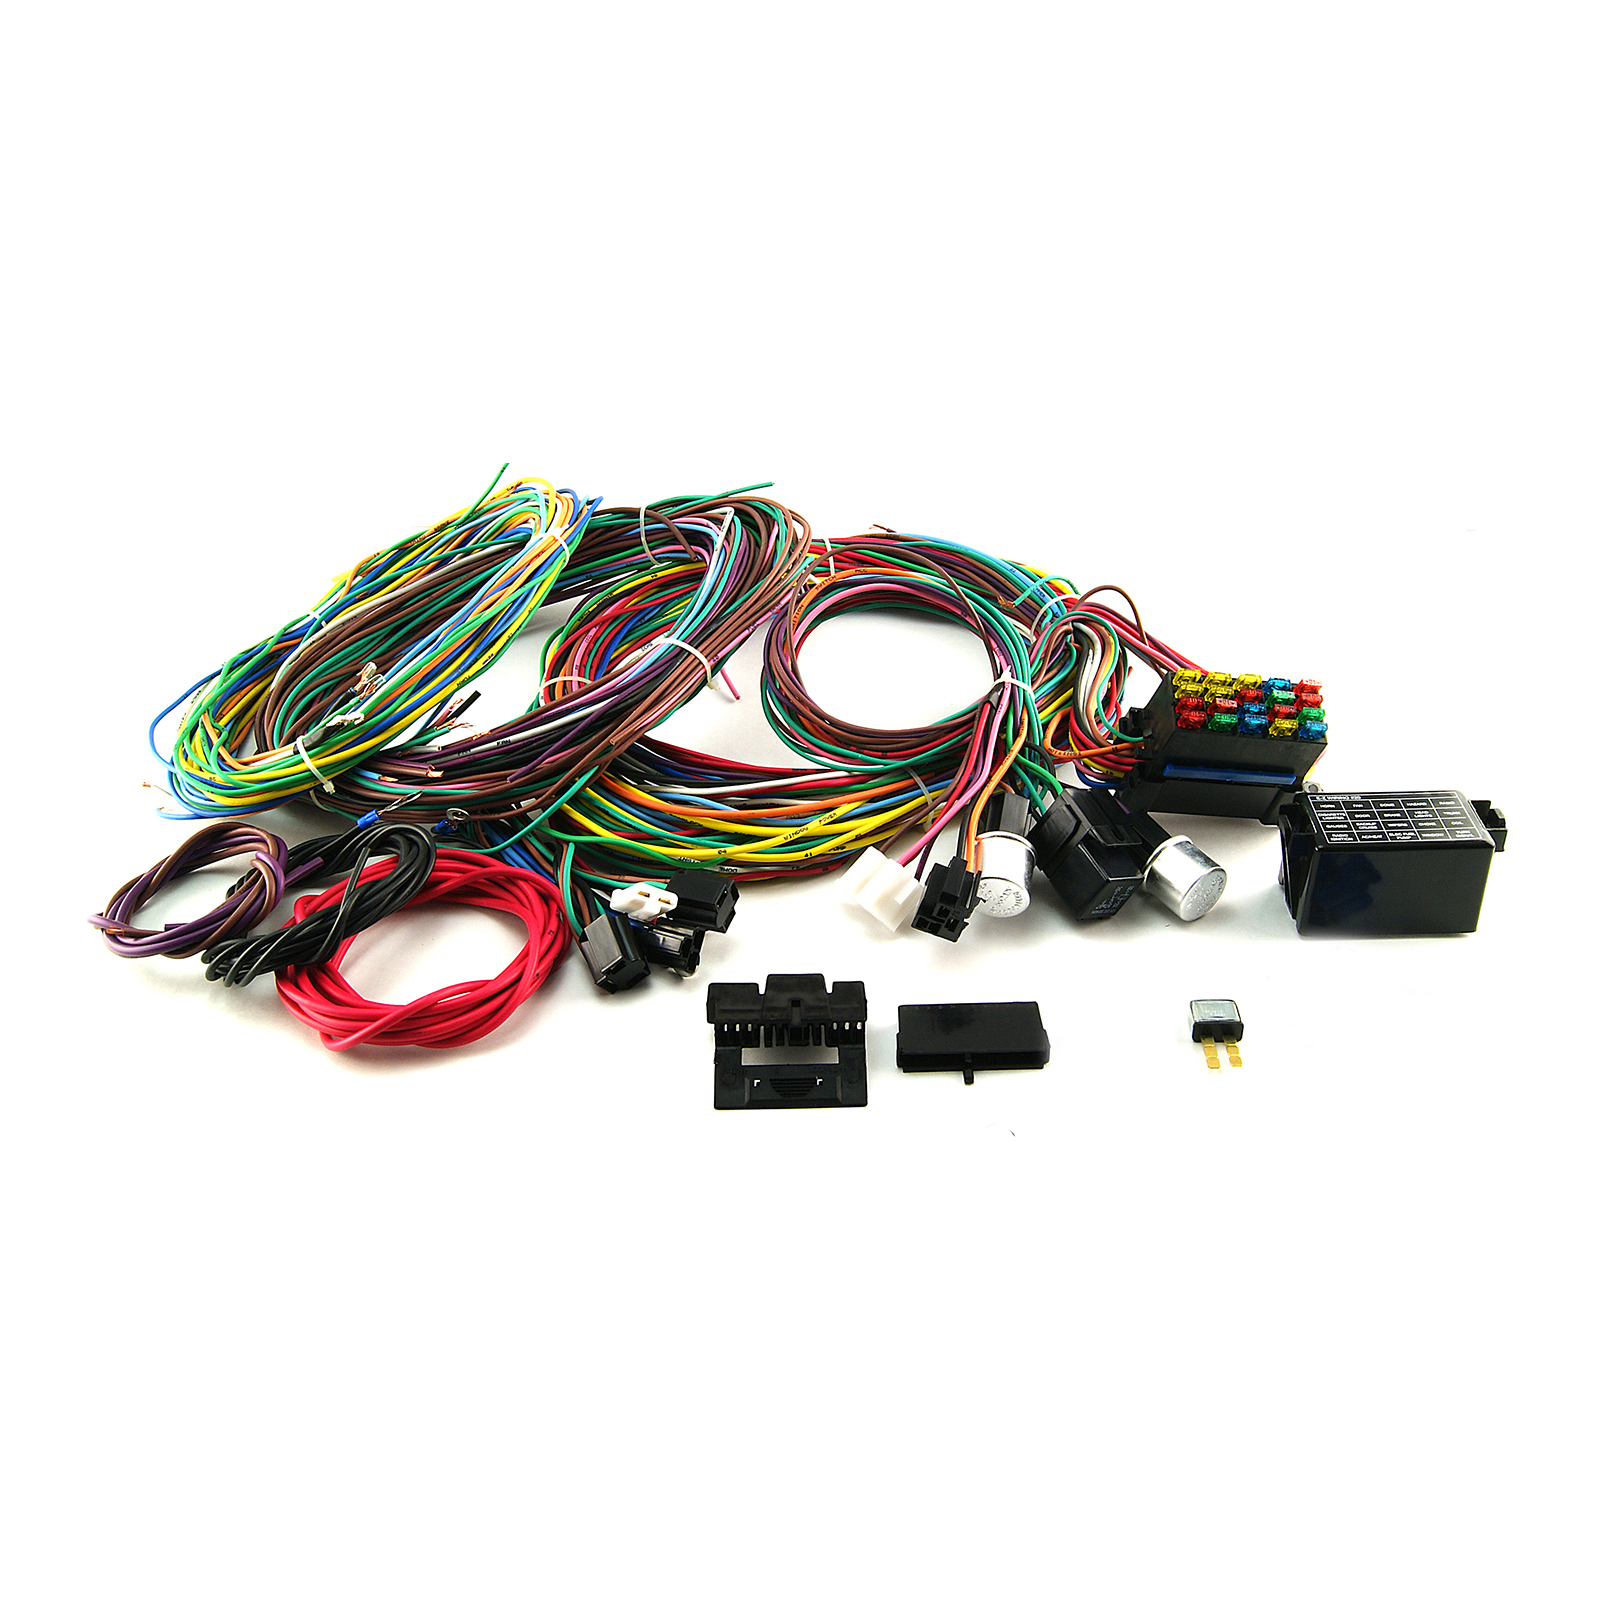 Wiring Harness Race Car : Universal circuit wiring harness kit street rod hot